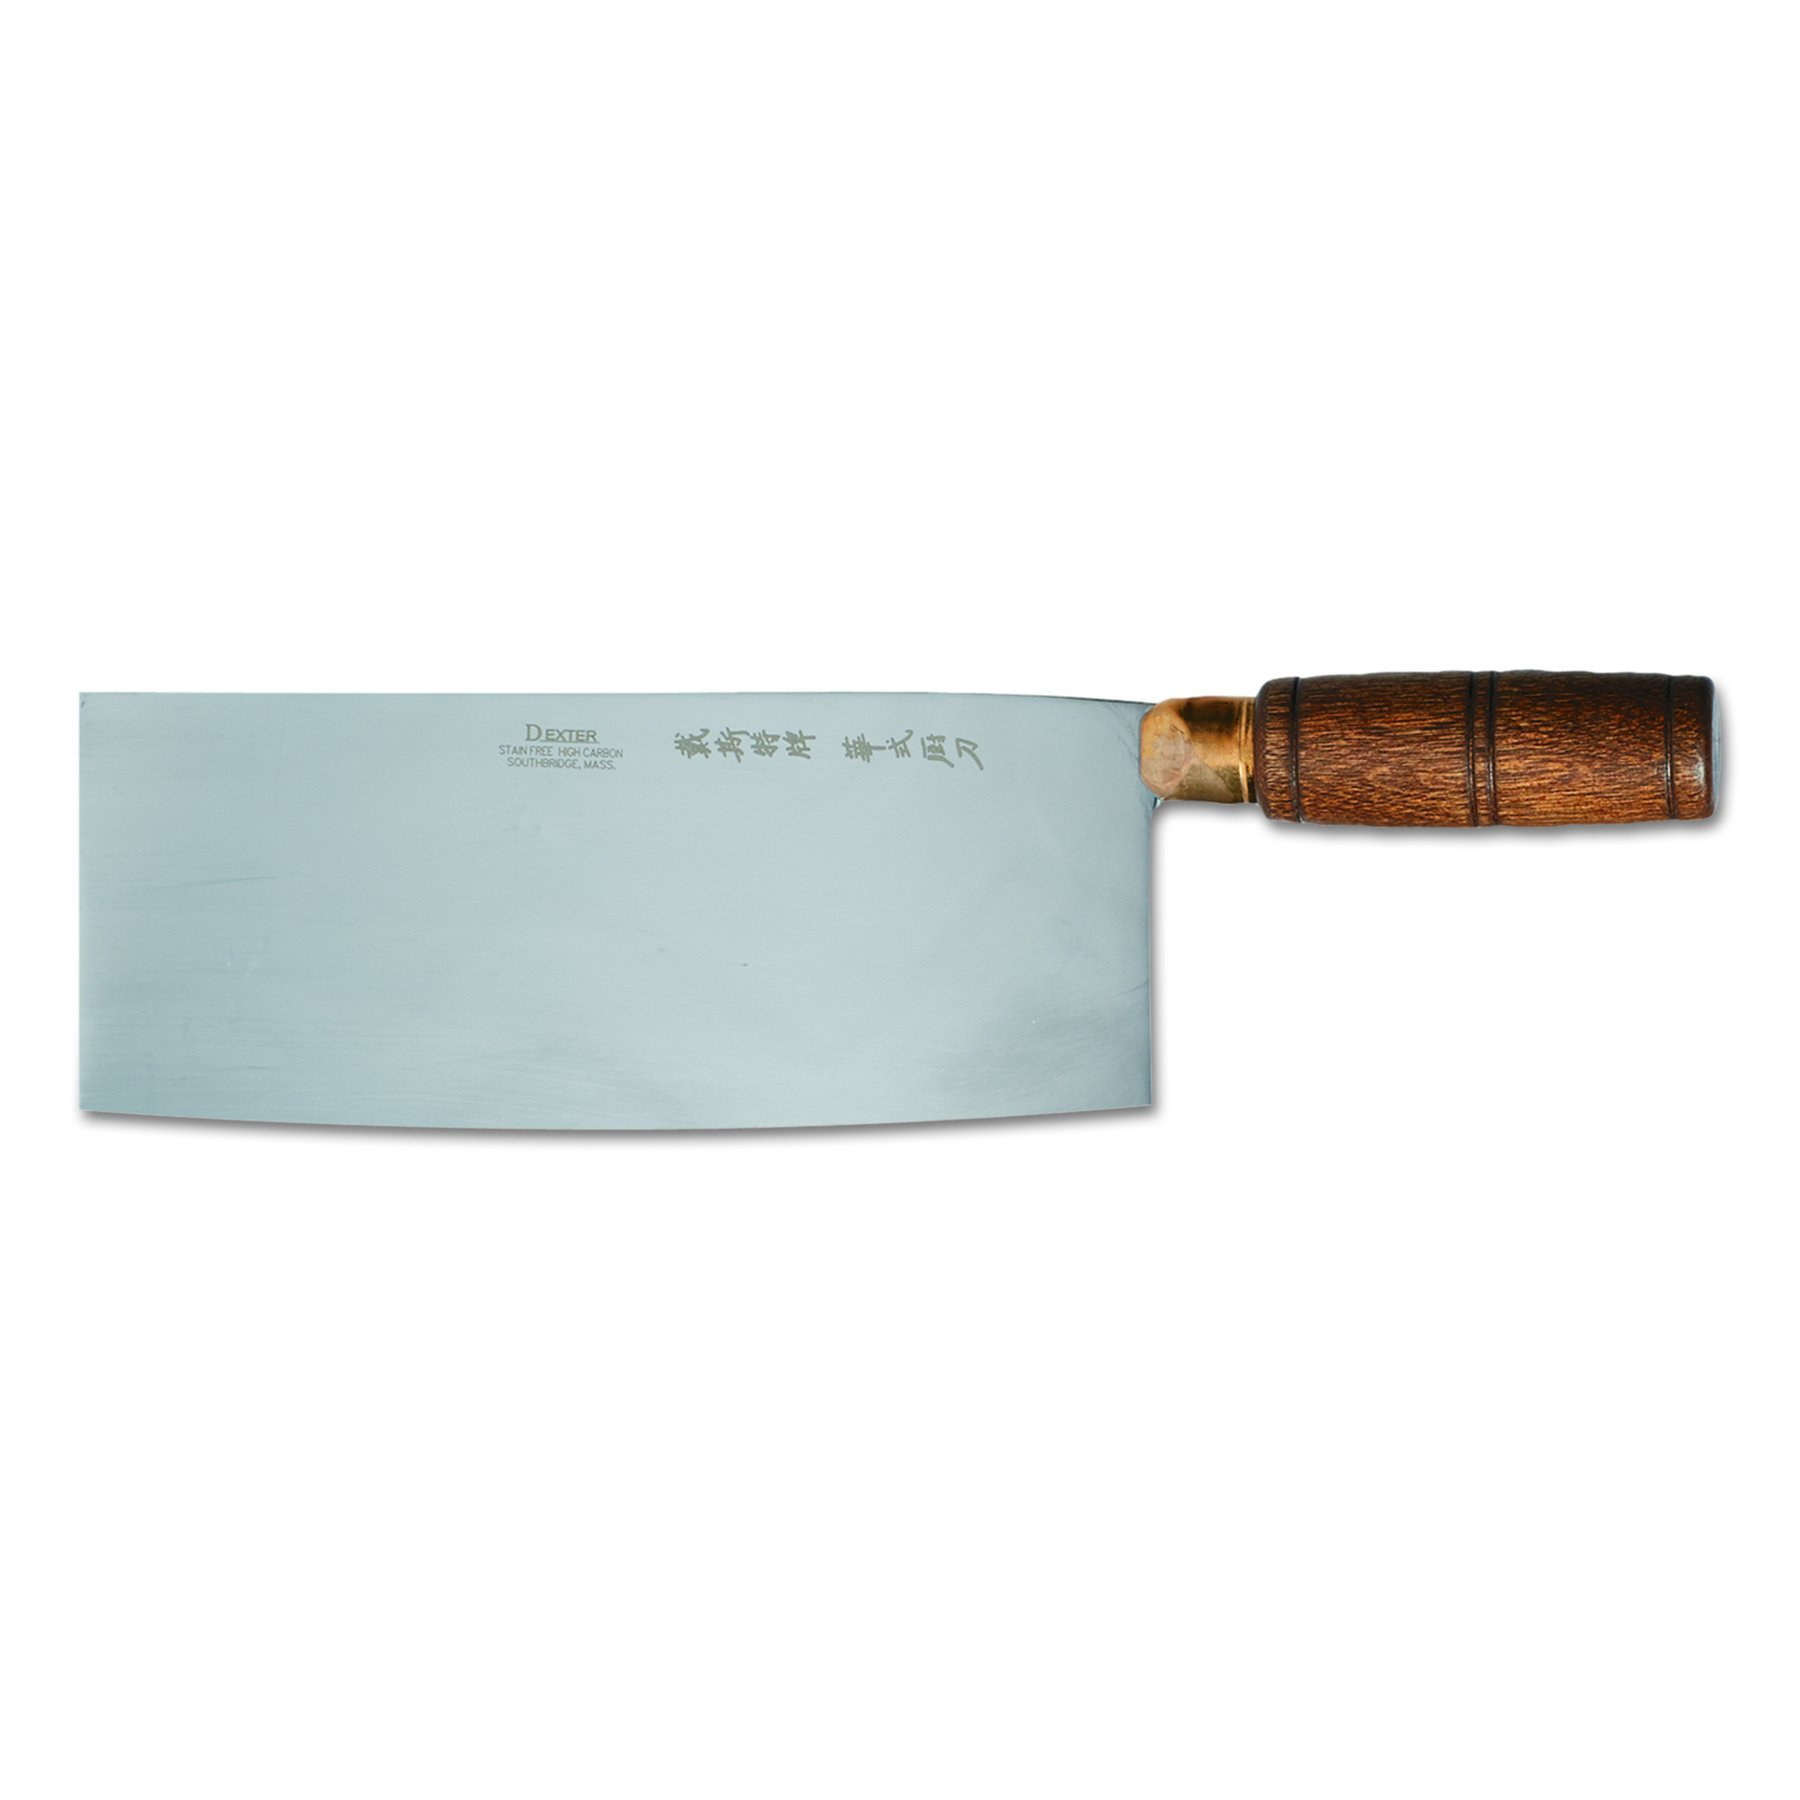 Traditional S5198 8'' x 3-1/4'' Chinese Chefs Knife with Wooden Handle